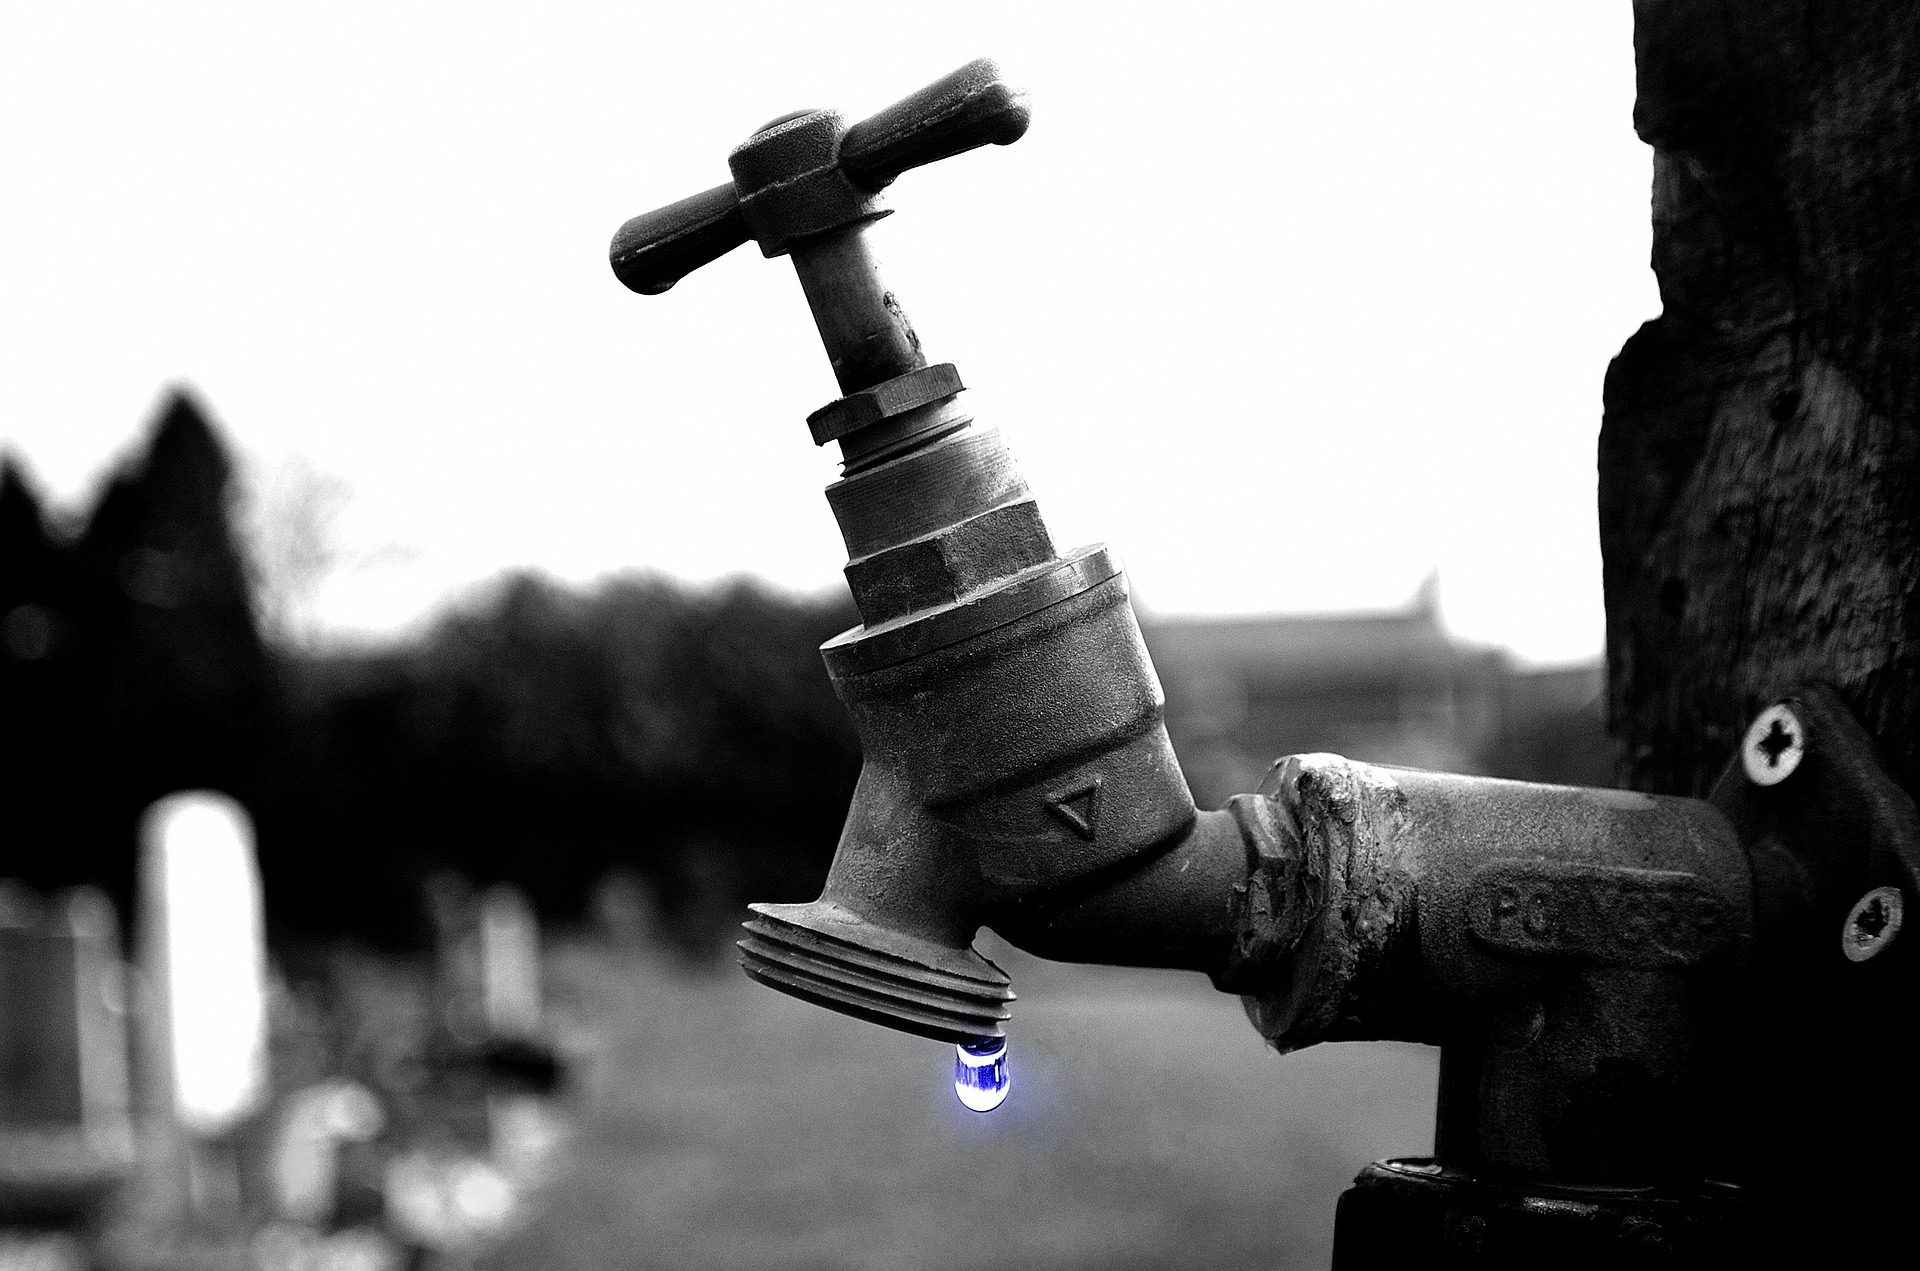 Service Drop Pipes Pipes : Residential service pipes plumbing services